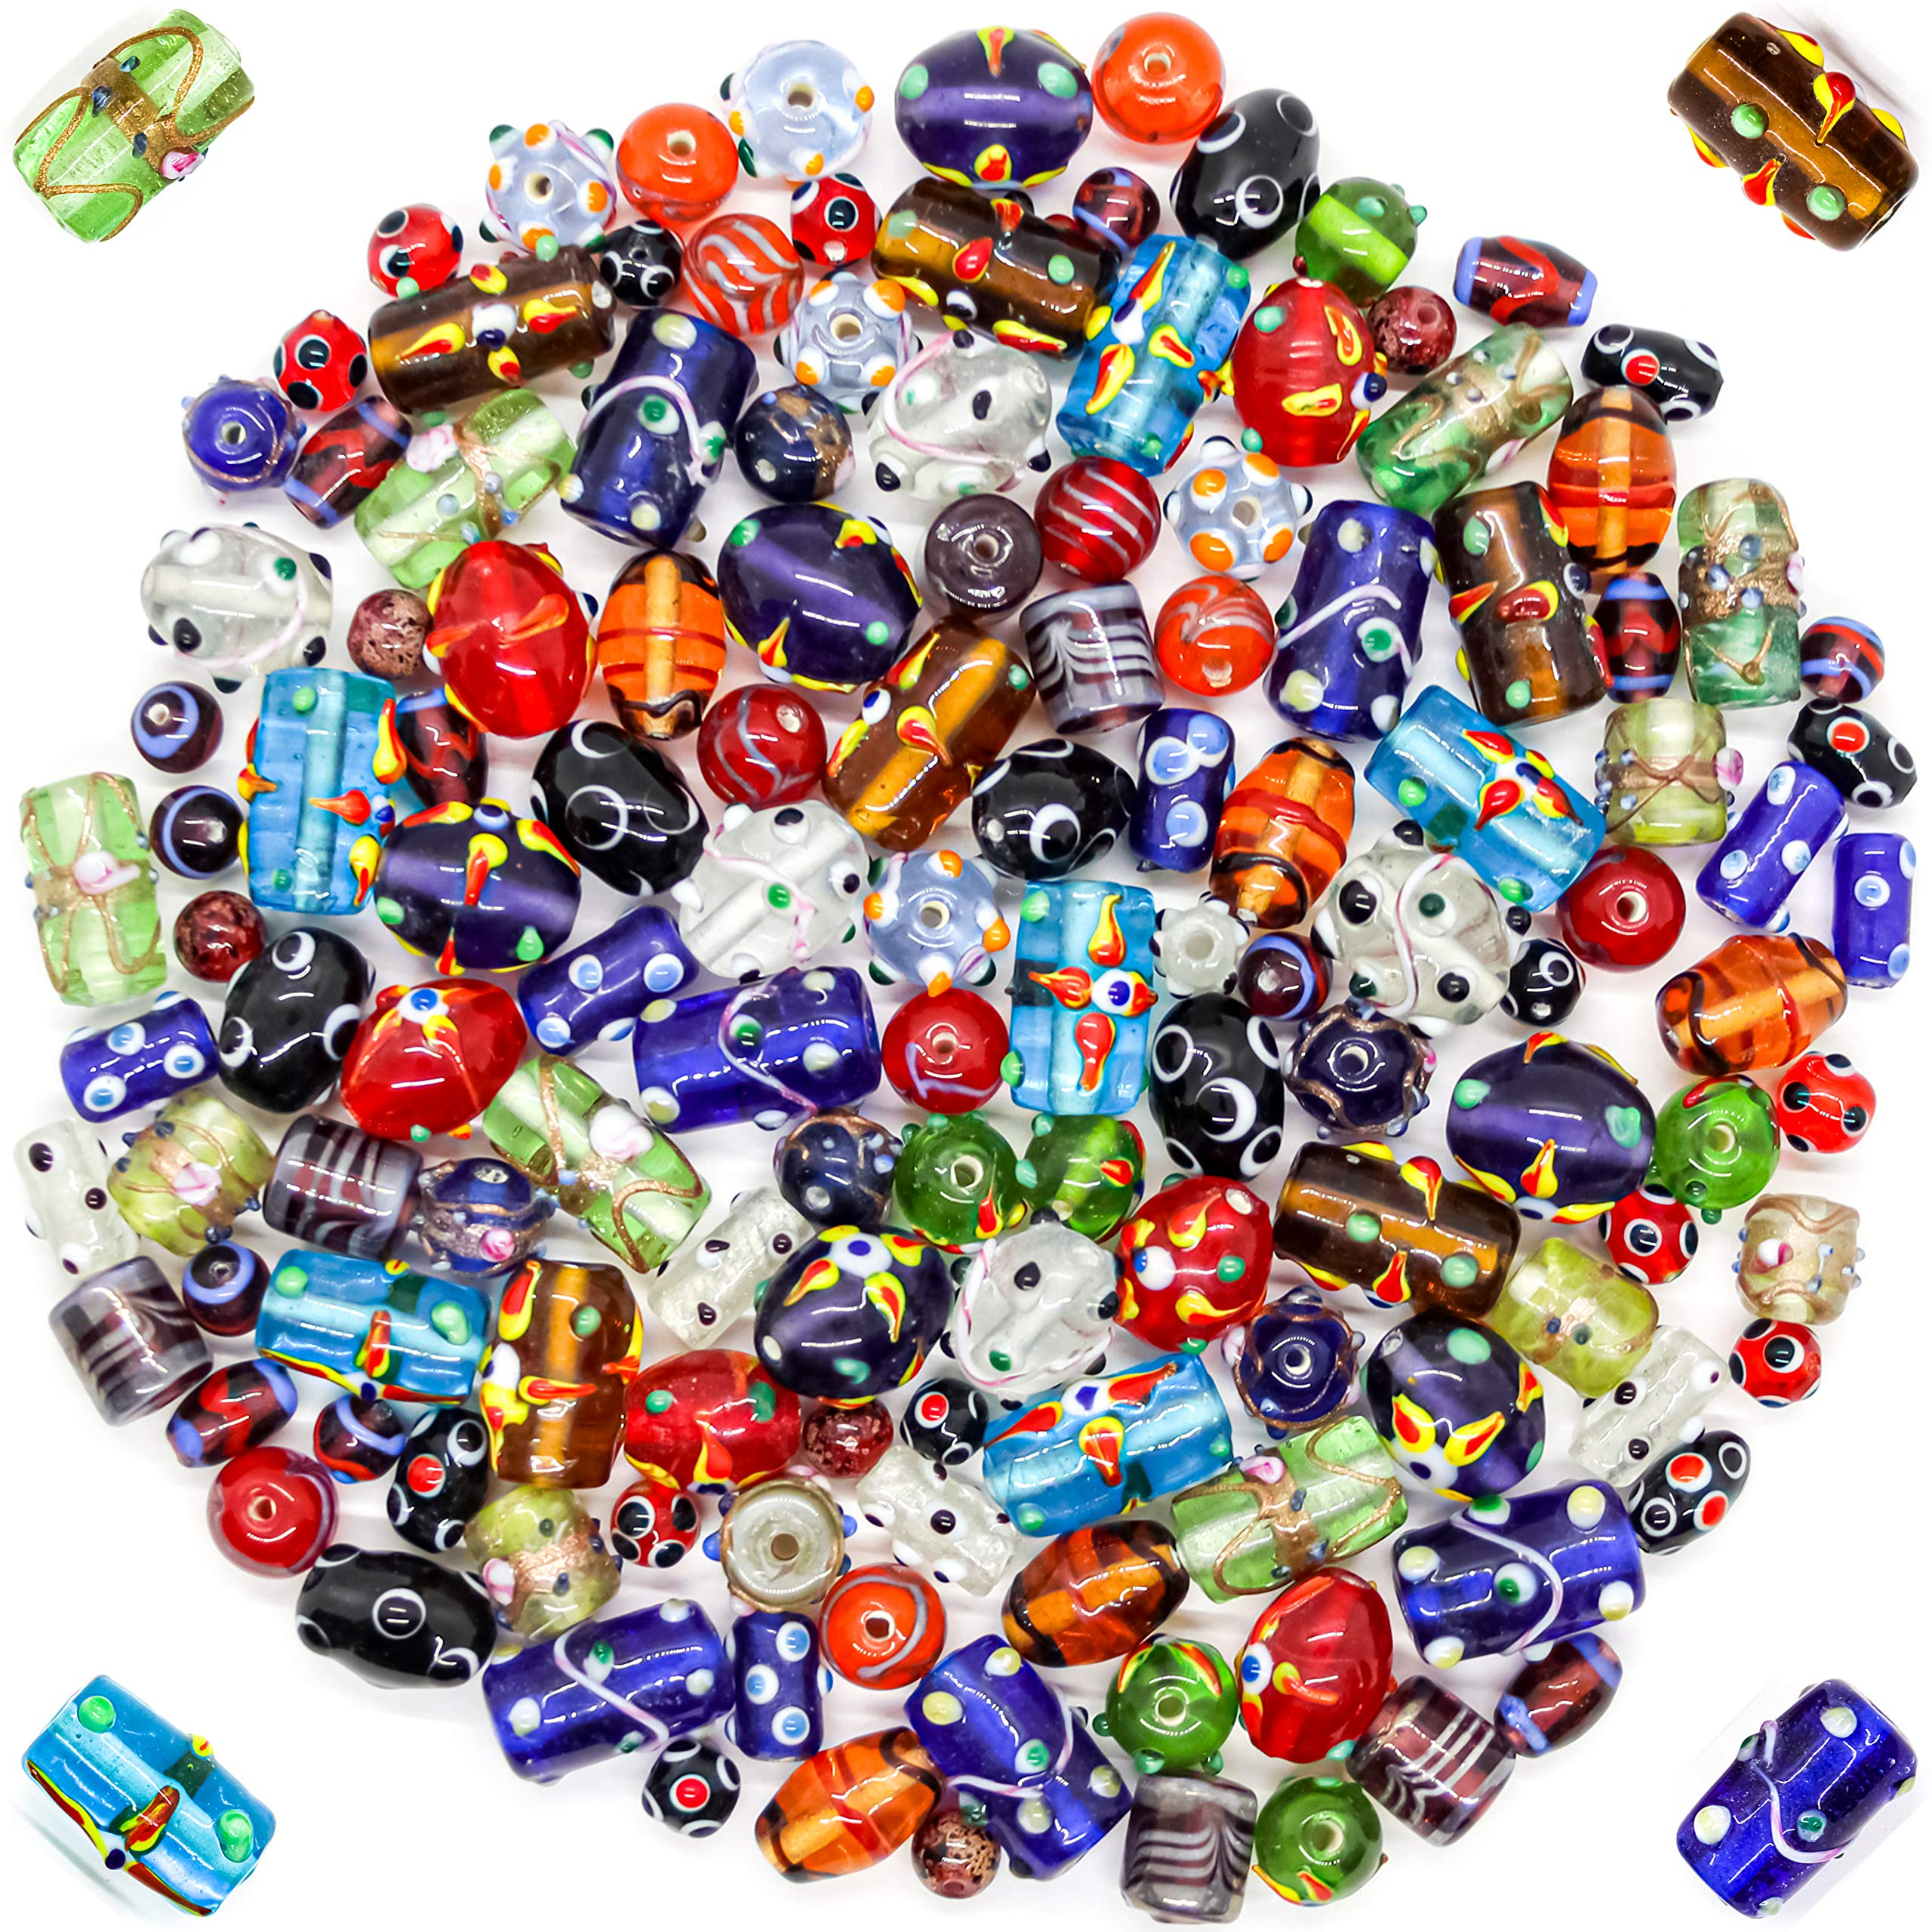 Glass Beads for Jewelry Making Supplies for Adults, 120-140 Pcs Bulk Kits - Premium Assorted Mix of Large Craft Lampwork Murano Beads for Bracelet and Necklace Crafting Supplies Kit by Frogsac